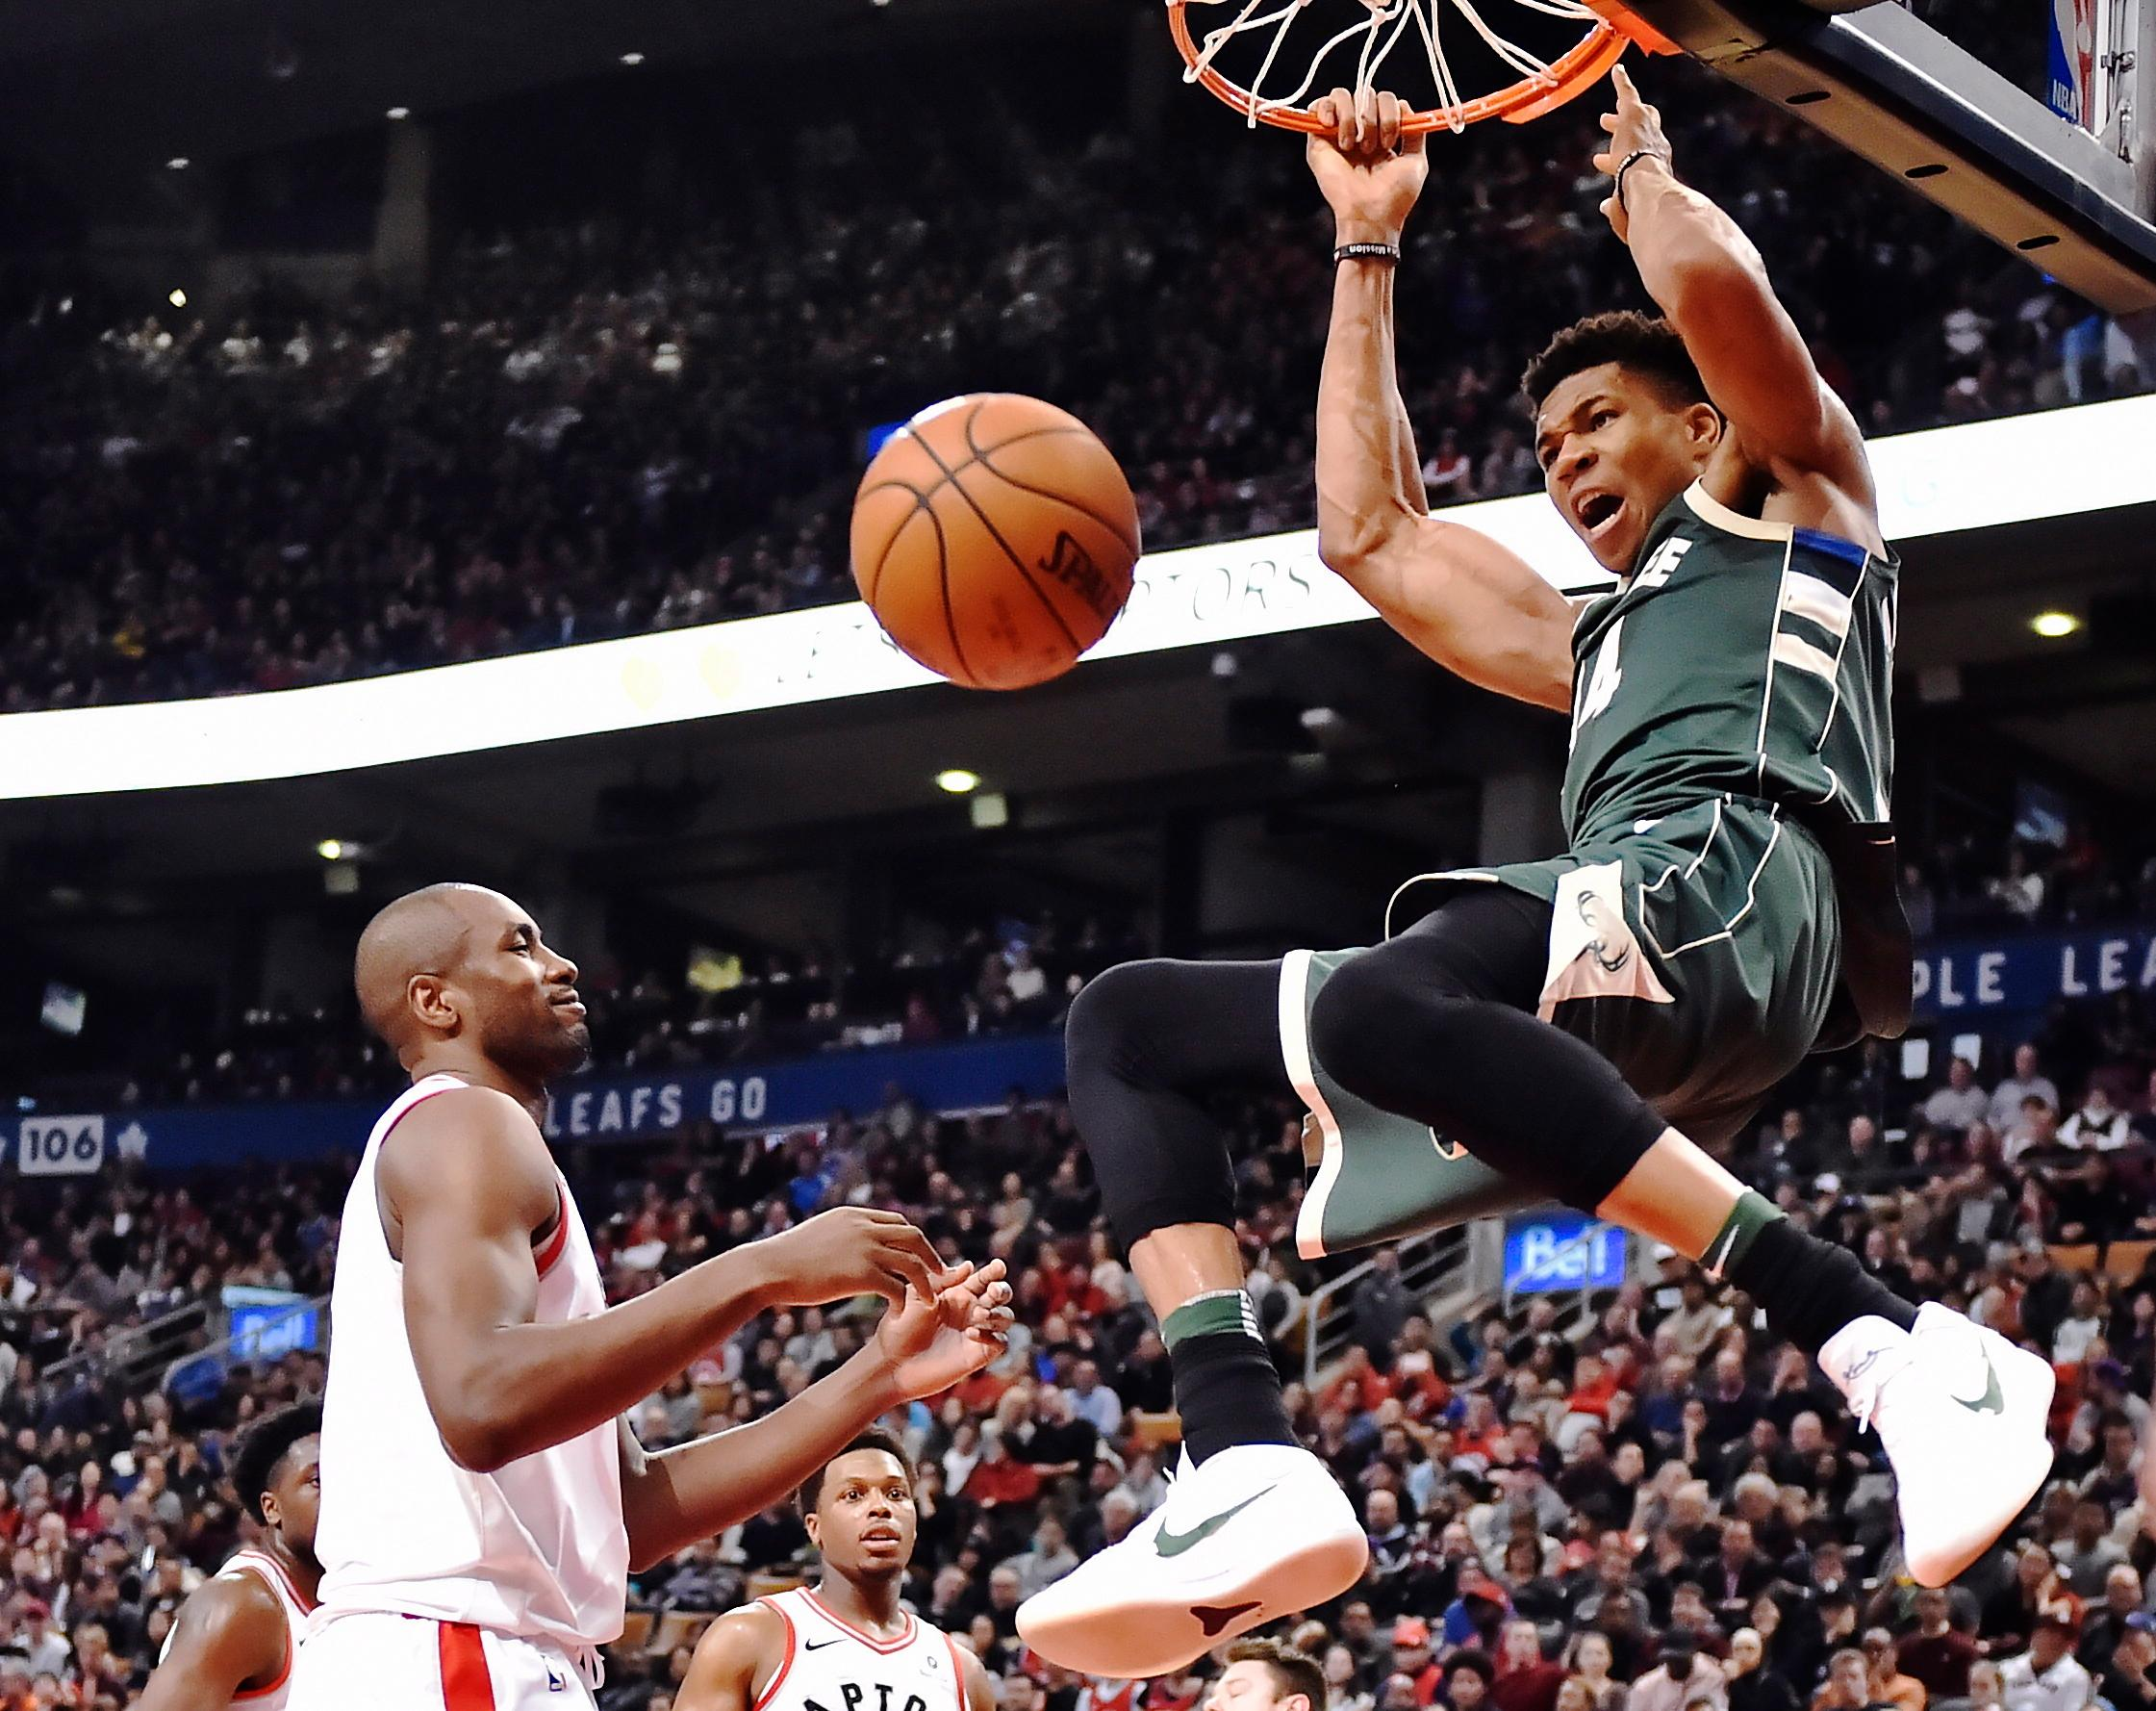 Milwaukee Bucks forward Giannis Antetokounmpo (34) dunks as Toronto Raptors forward Serge Ibaka (9) looks on during the second half of a game in Toronto on Monday, Jan. 1, 2018. (Frank Gunn/The Canadian Press via AP)